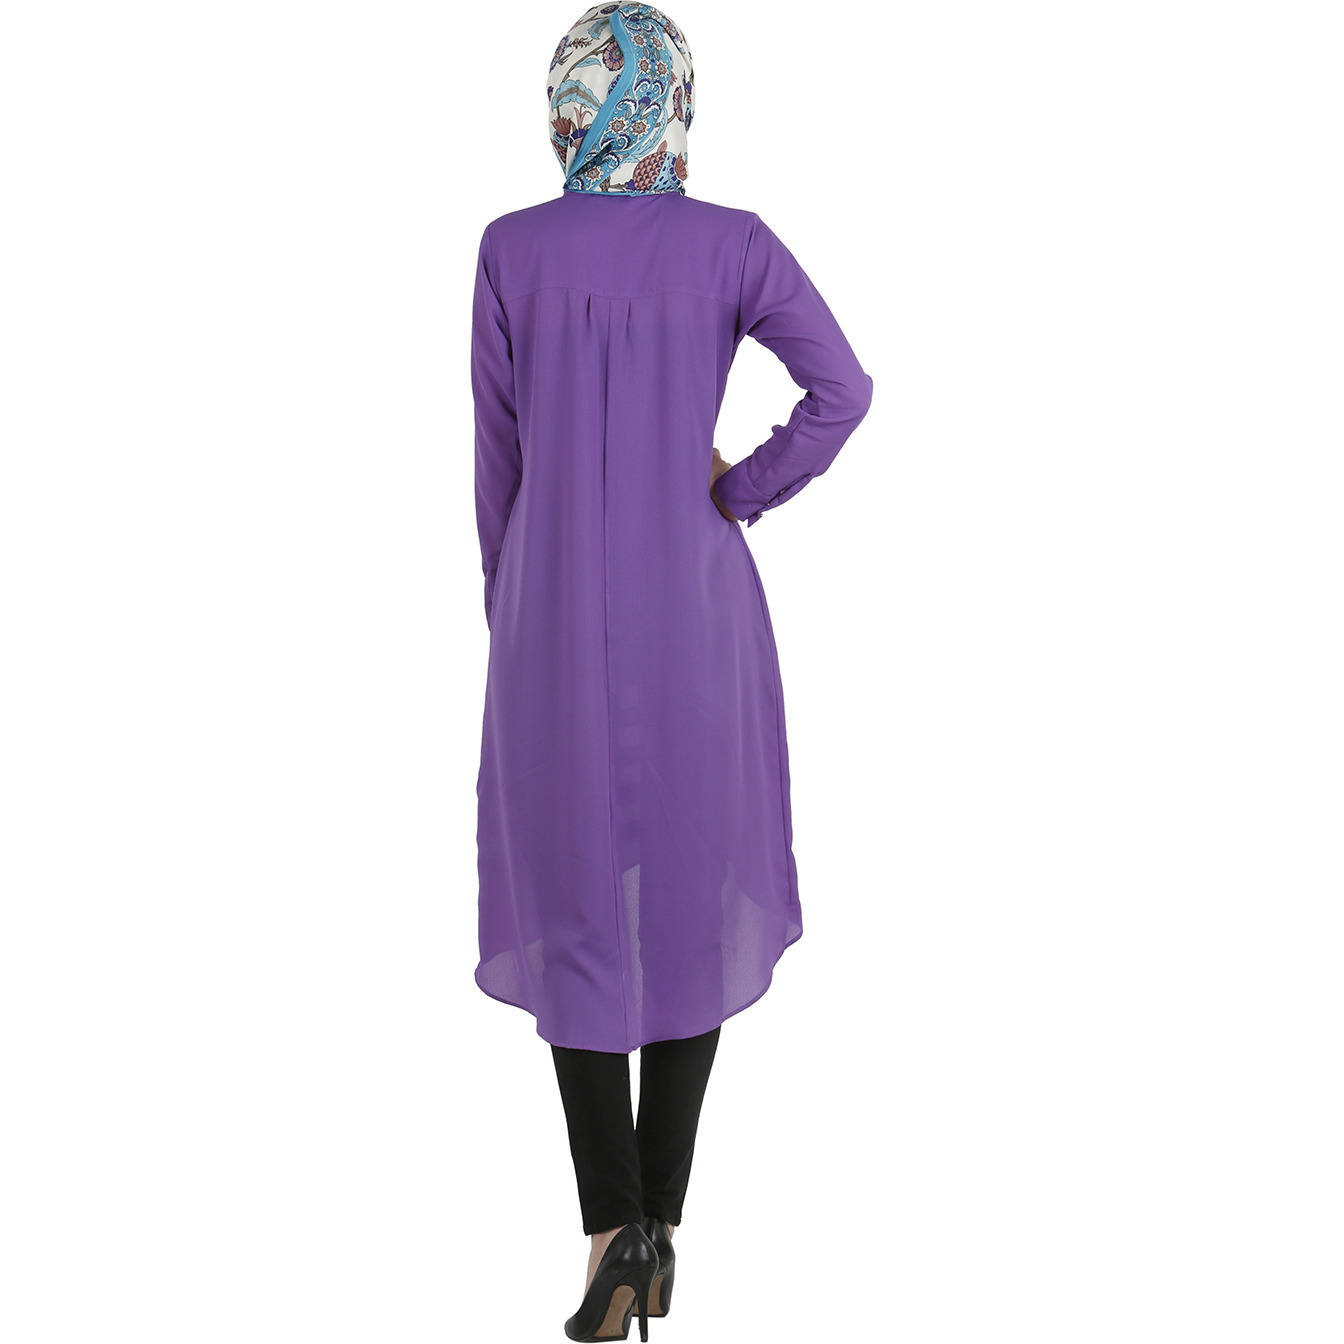 Modest Forever Half pleated tunic dress (Size: M)